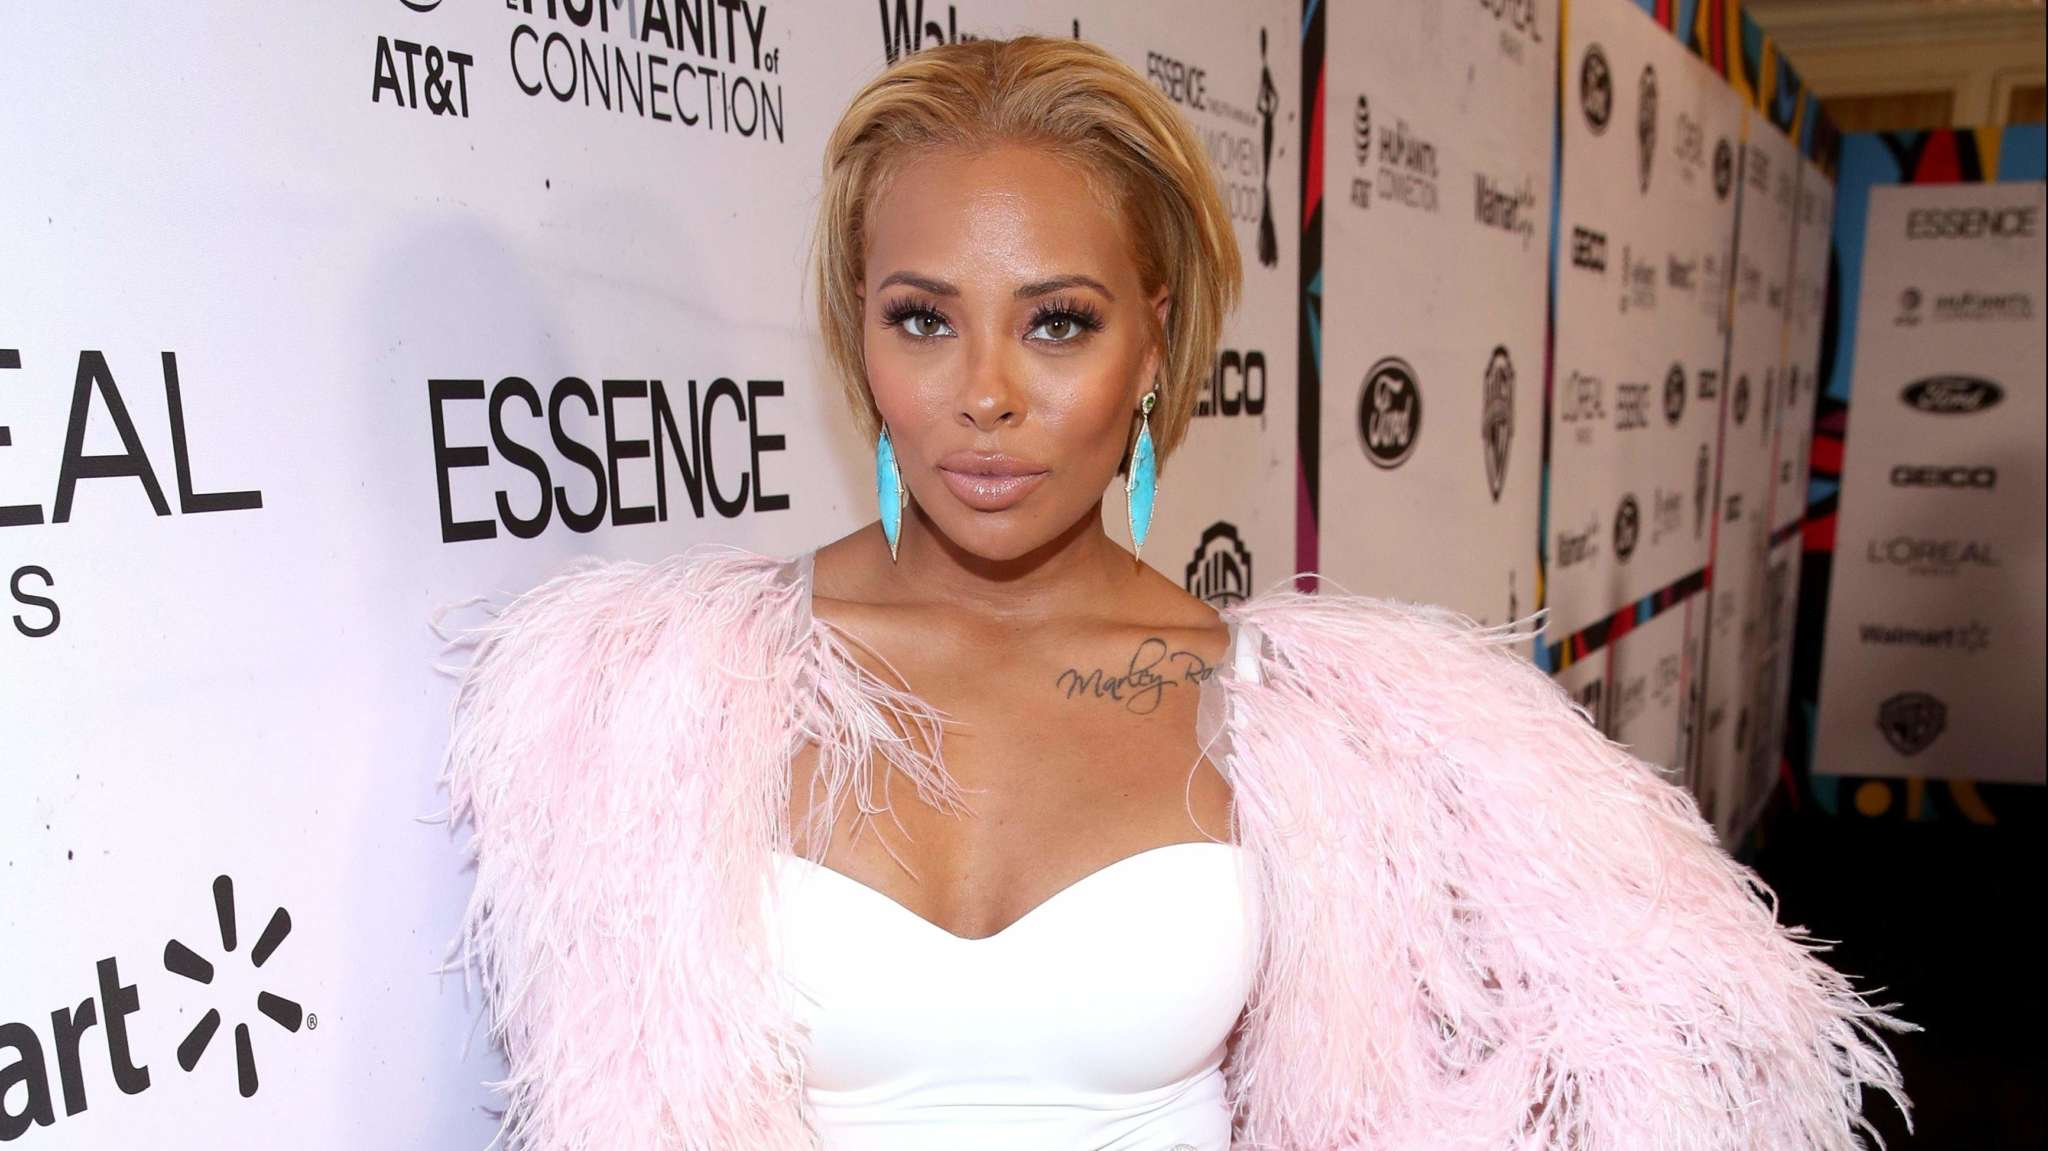 Eva Marcille Impresses Fans With This No Filter Photo: 'This World Owes Me Nothing'